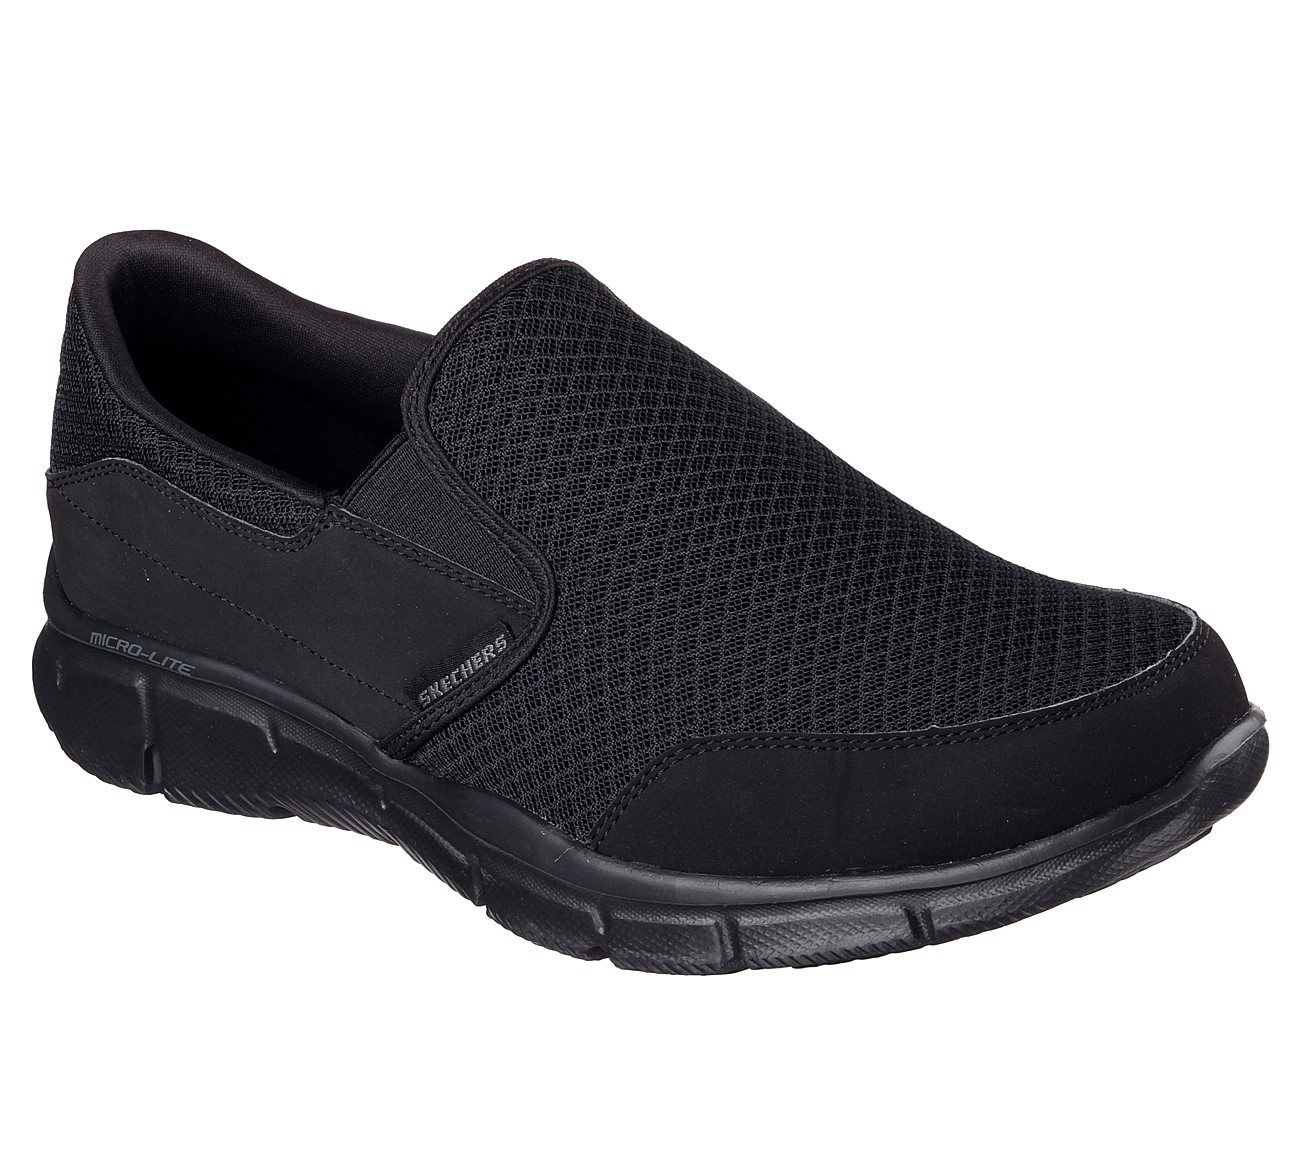 Mens Skechers Sport Memory Foam?Equalizer Persistent Slip-on Shoes Black/White Black/White